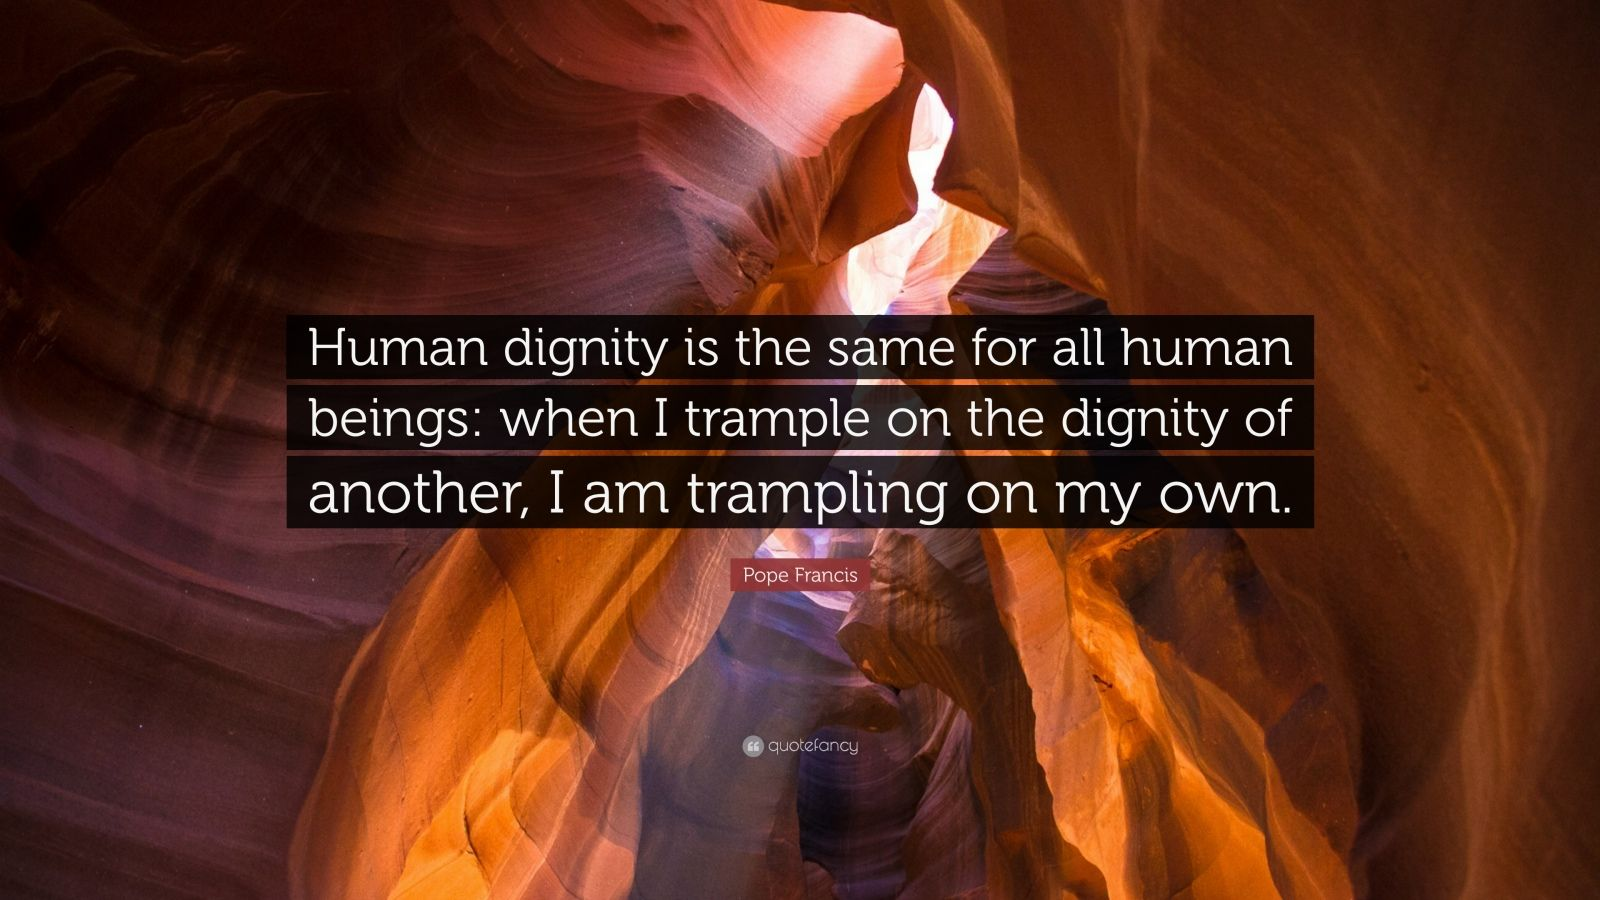 """Pope Francis Quote: """"Human dignity is the same for all human beings: when I trample on the dignity of another, I am trampling on my own."""""""